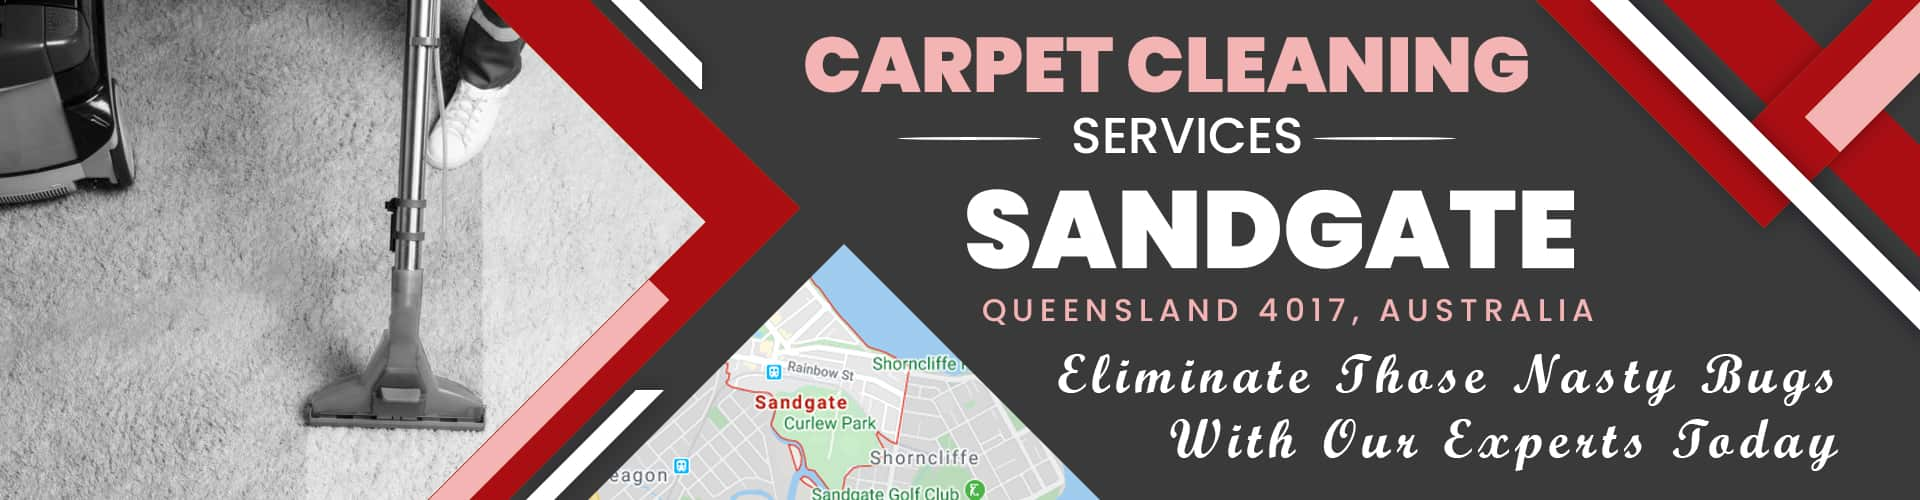 Carpet Cleaning Sandgate